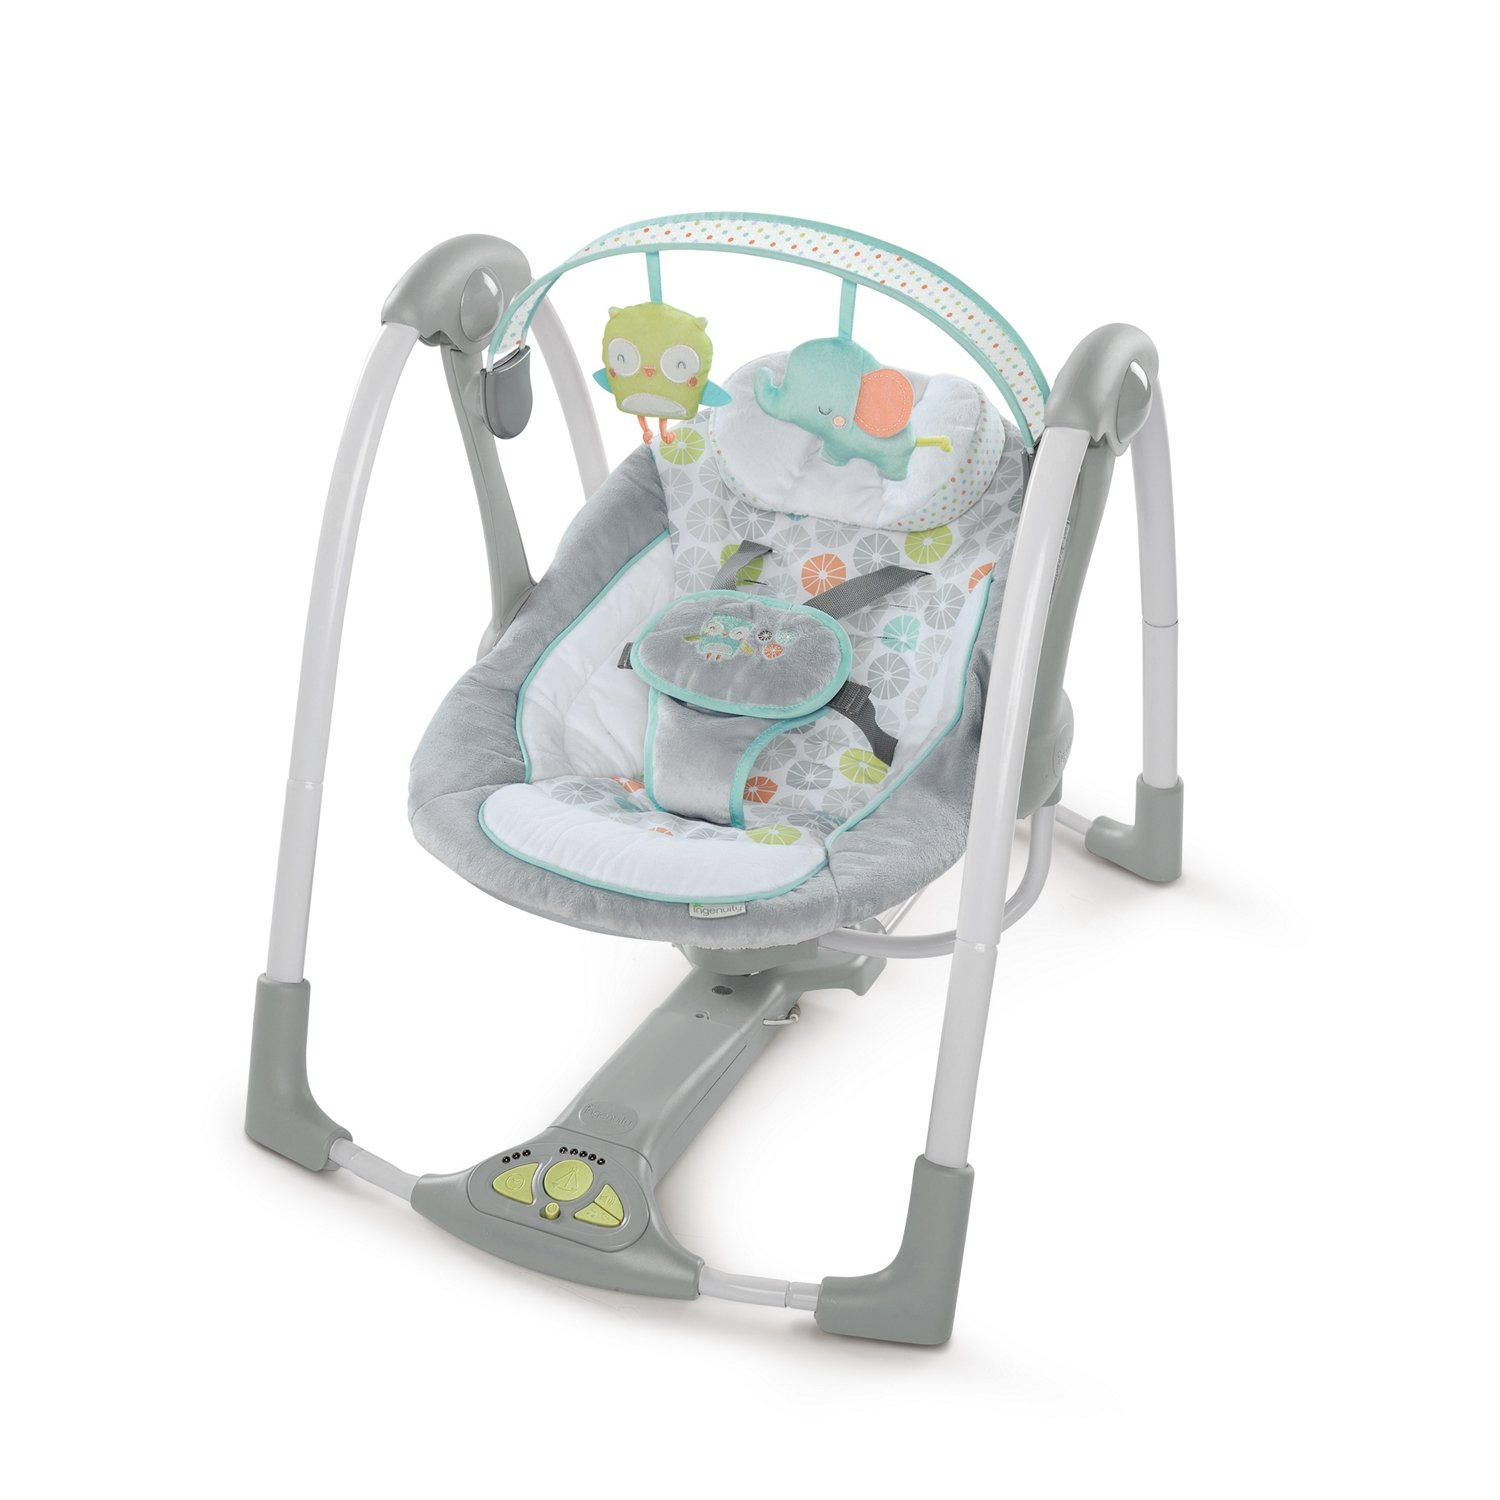 Ingenuity Swing 'n Go Portable Baby Swings